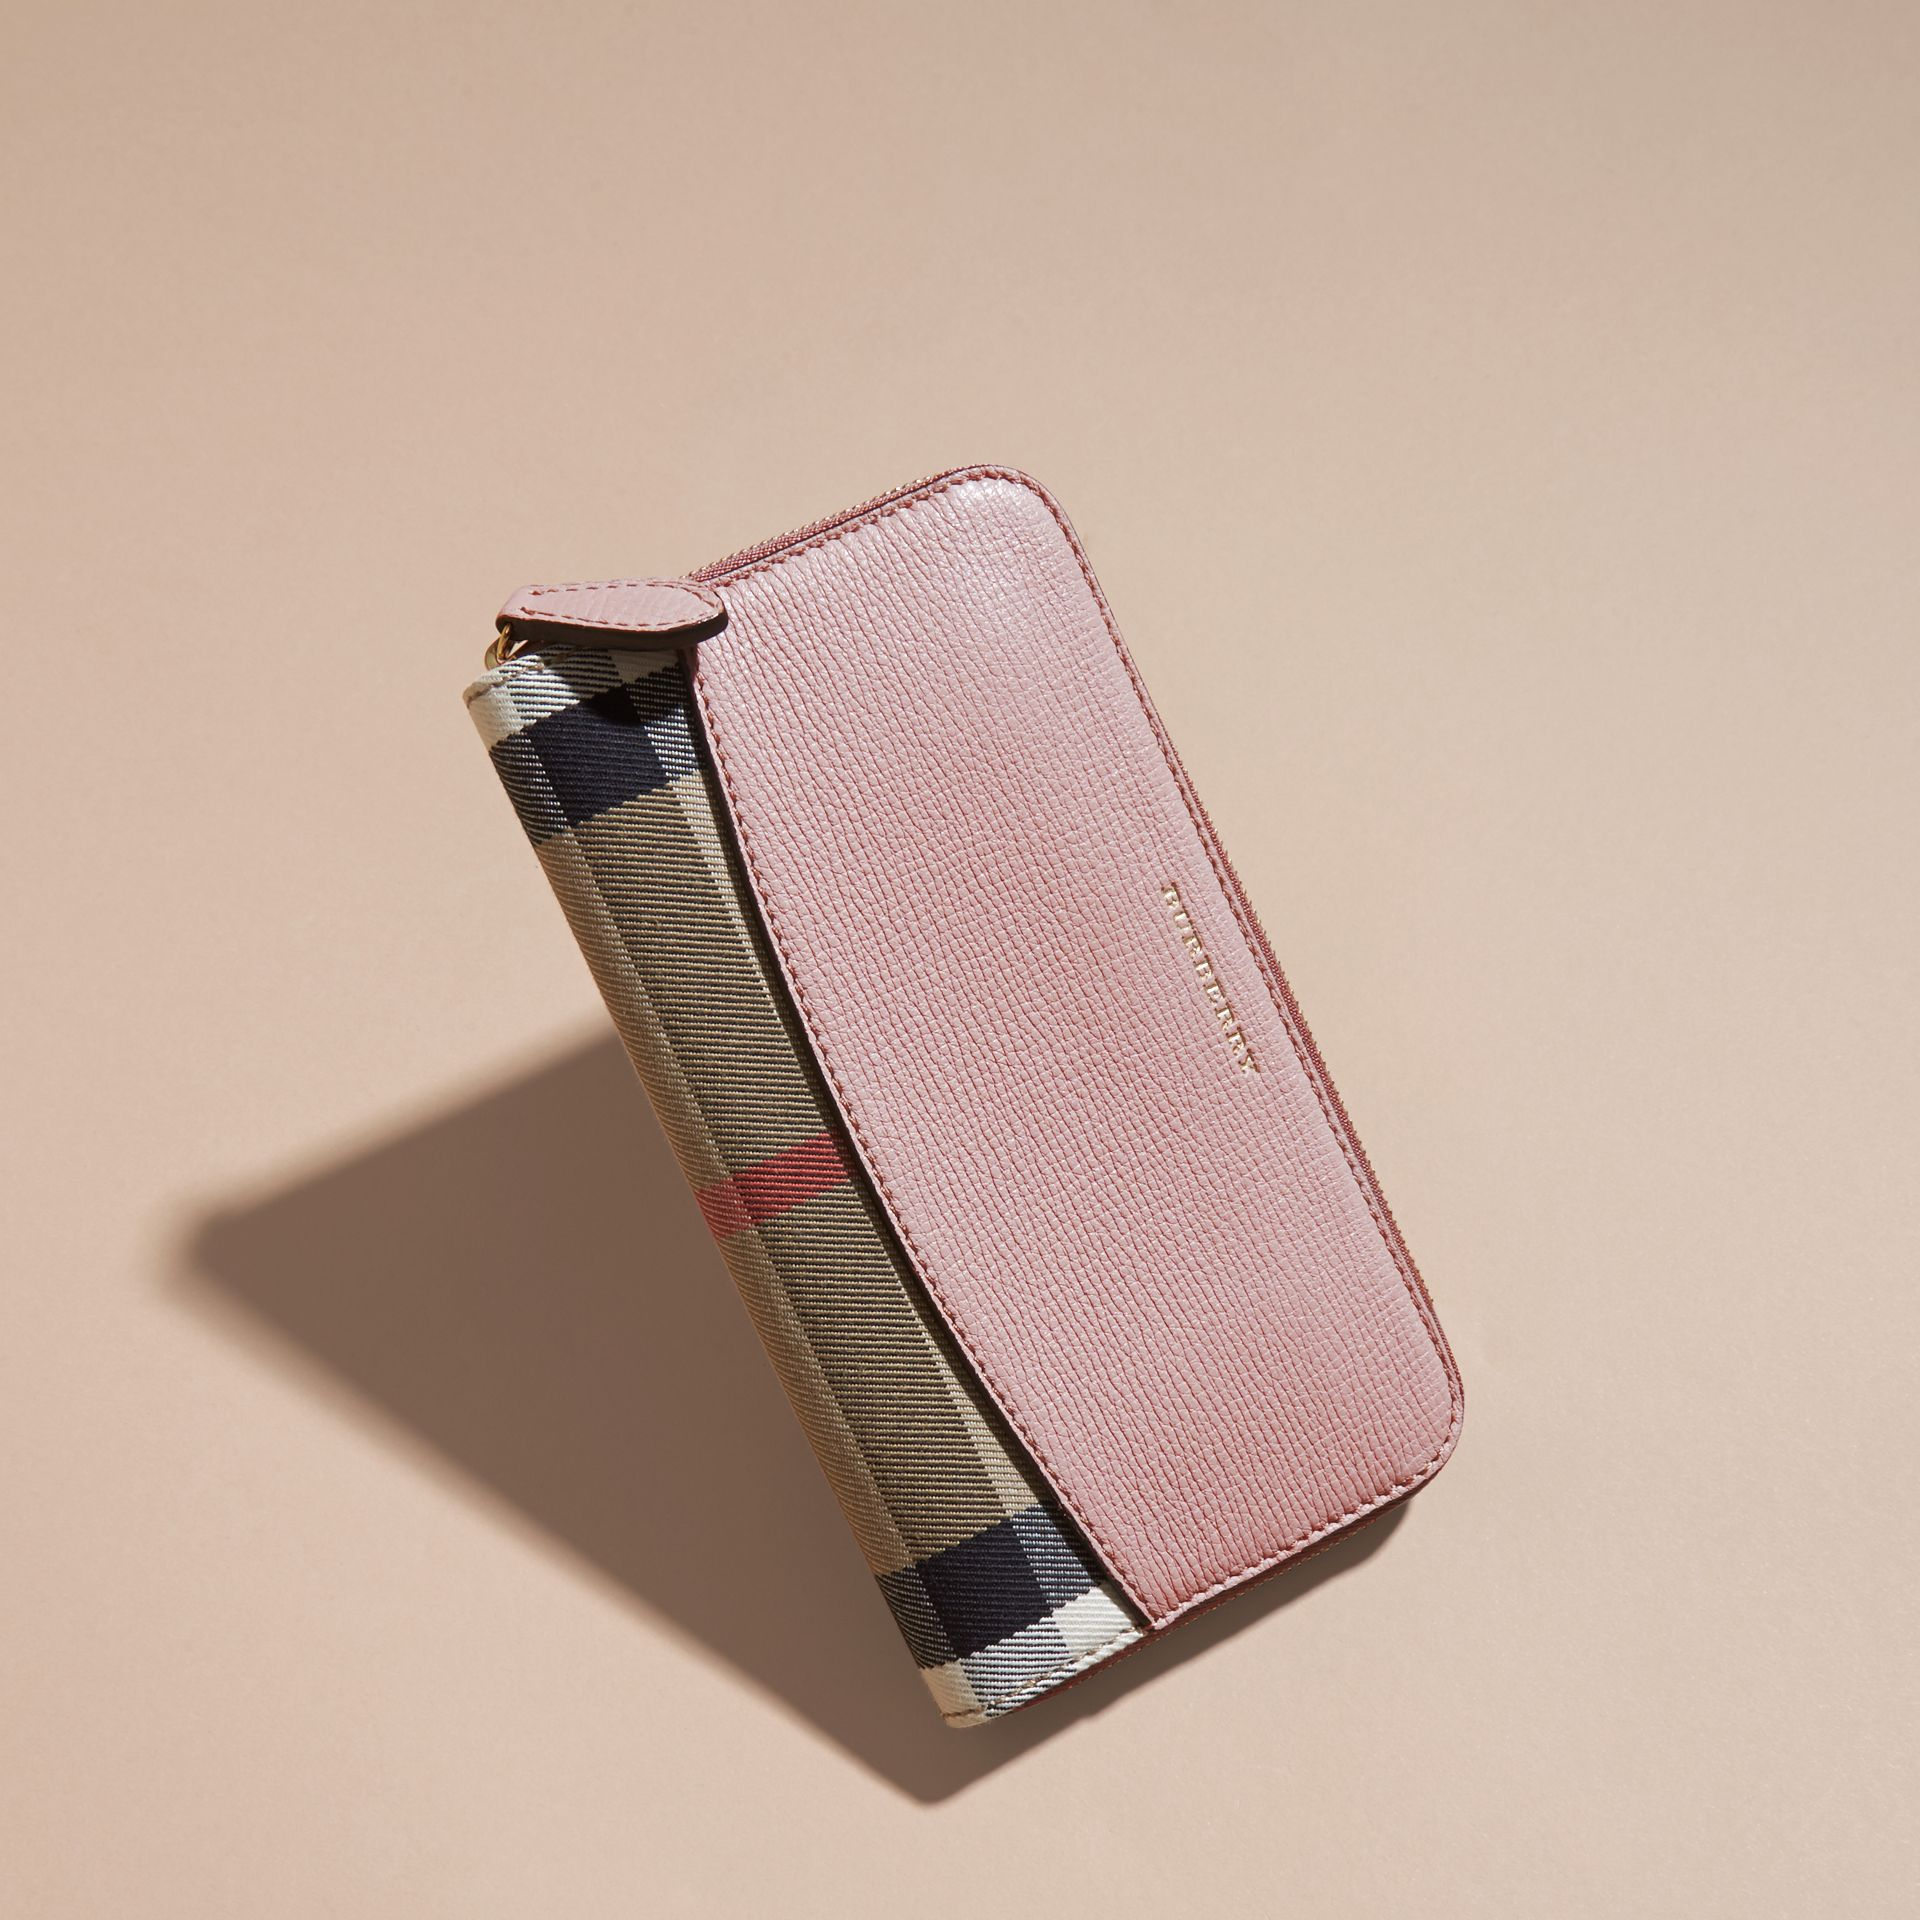 House Check and Leather Ziparound Wallet in Pale Orchid - Women | Burberry Singapore - gallery image 6